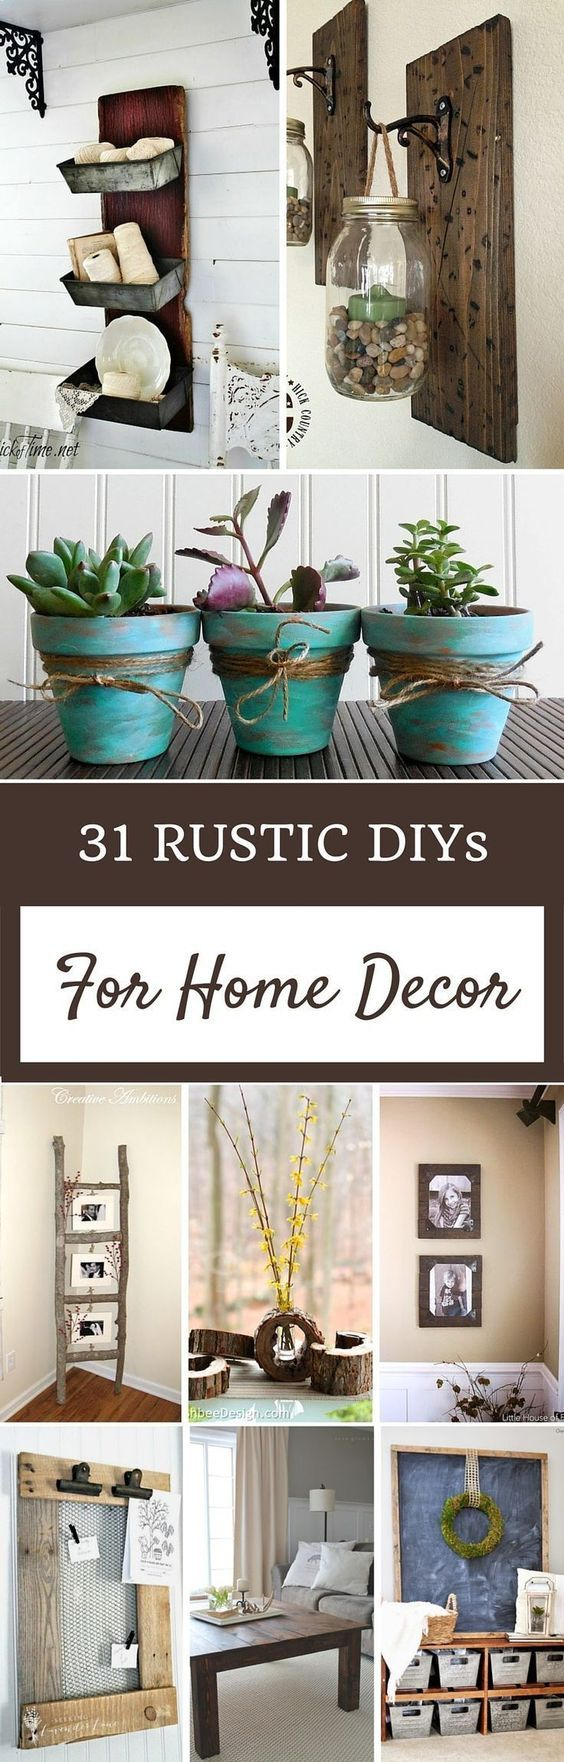 31 rustic diy home decor projects pinterest create distressed 31 rustic diy home decor projects create these farmhouse cottage do it yourself projects solutioingenieria Gallery